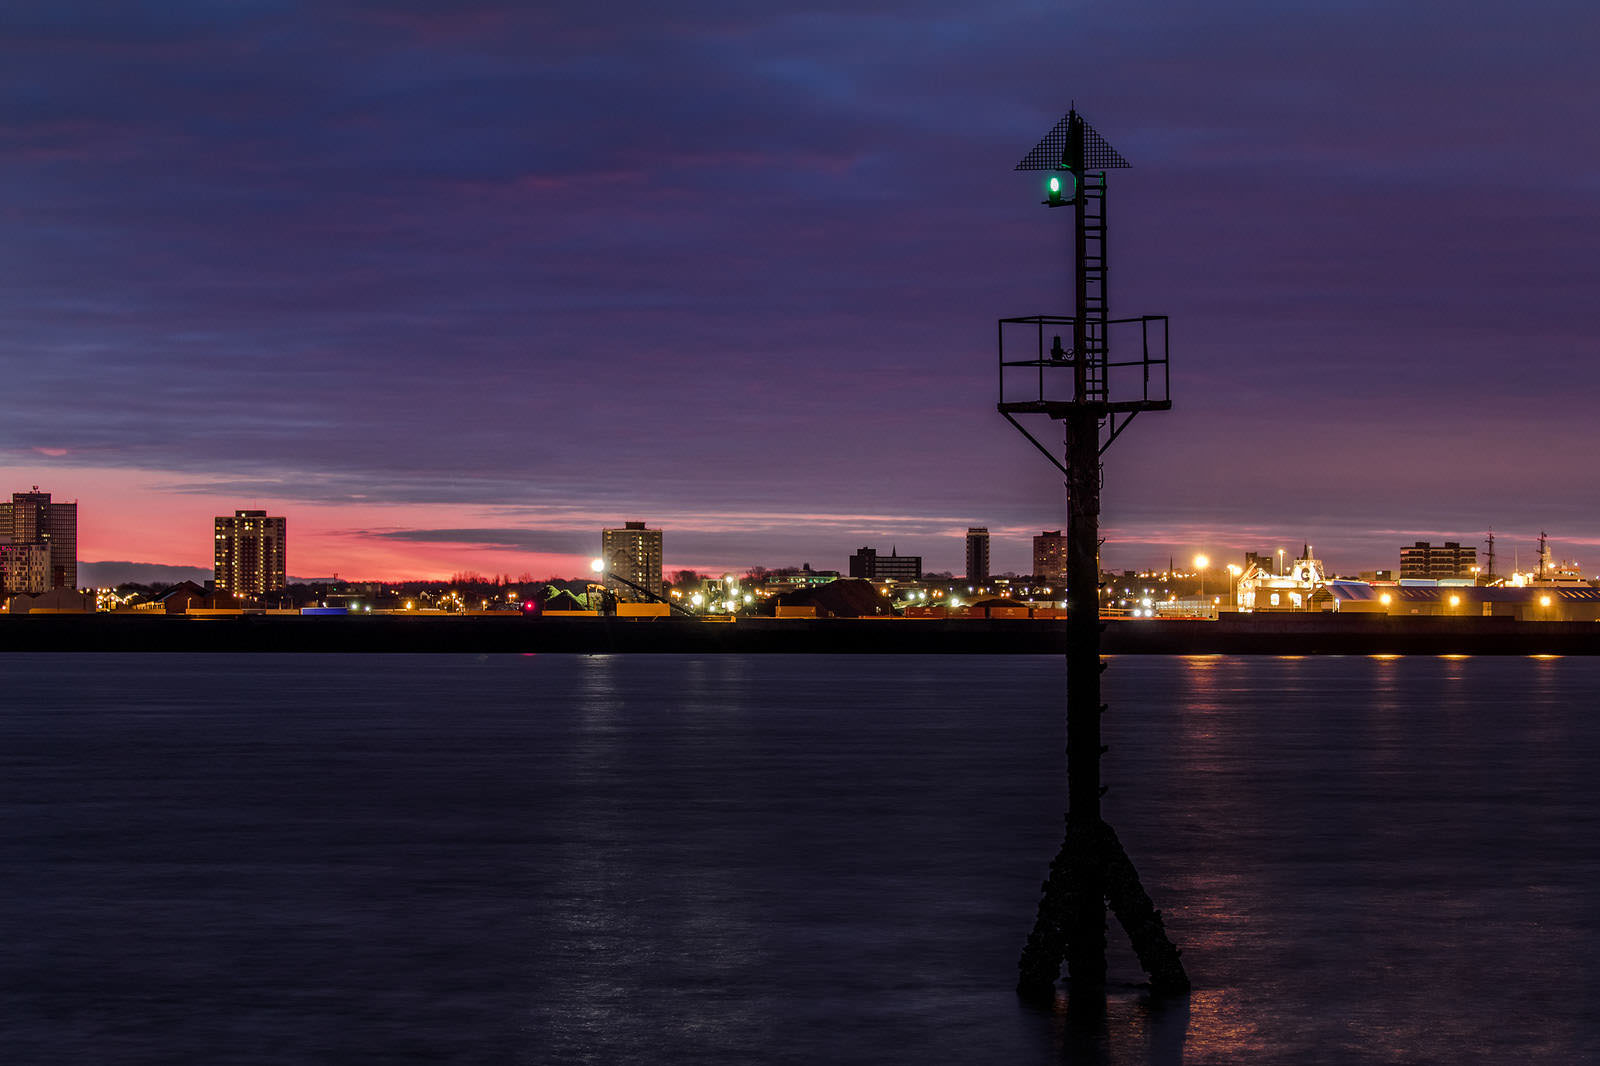 Across The Mersey Liverpool